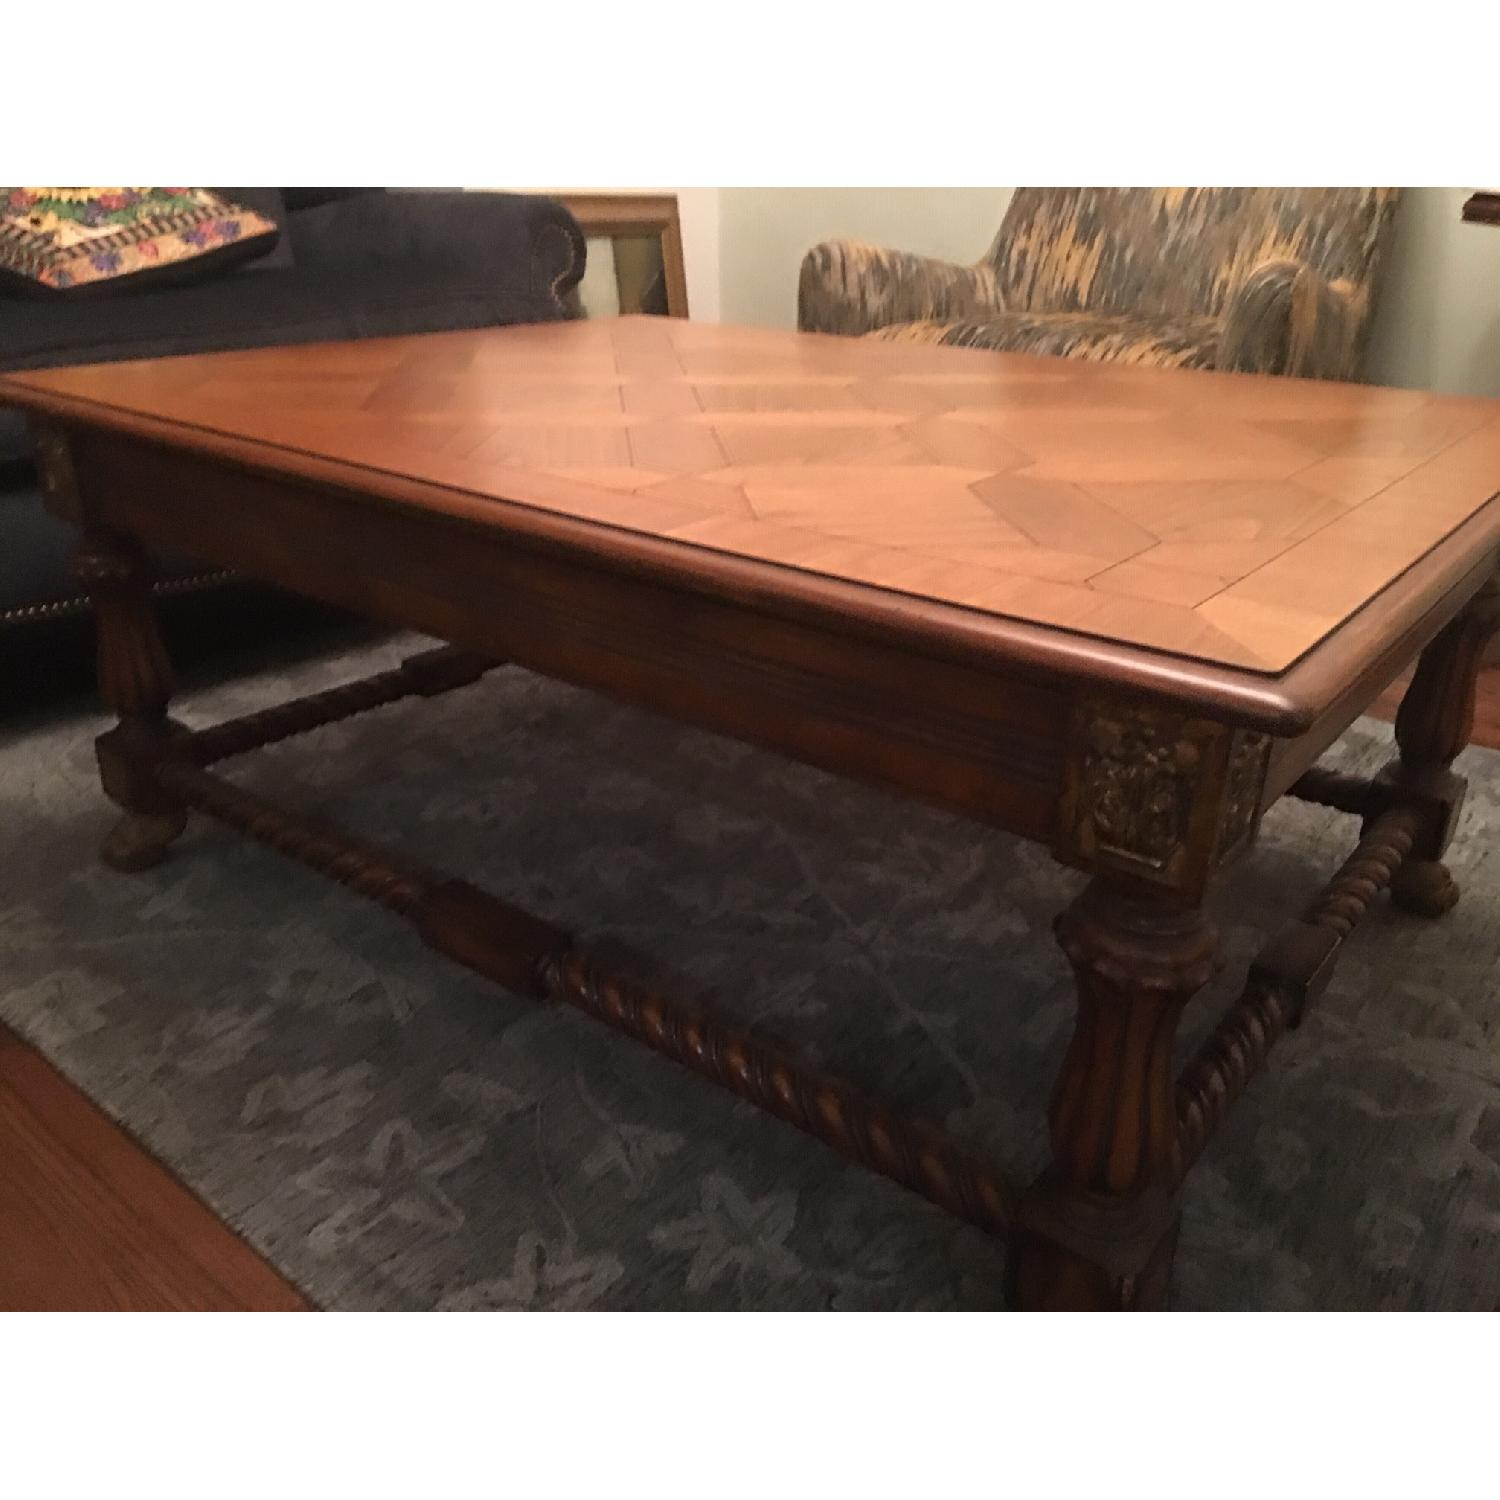 Large Coffee Table w/ Inlaid Wood - image-1